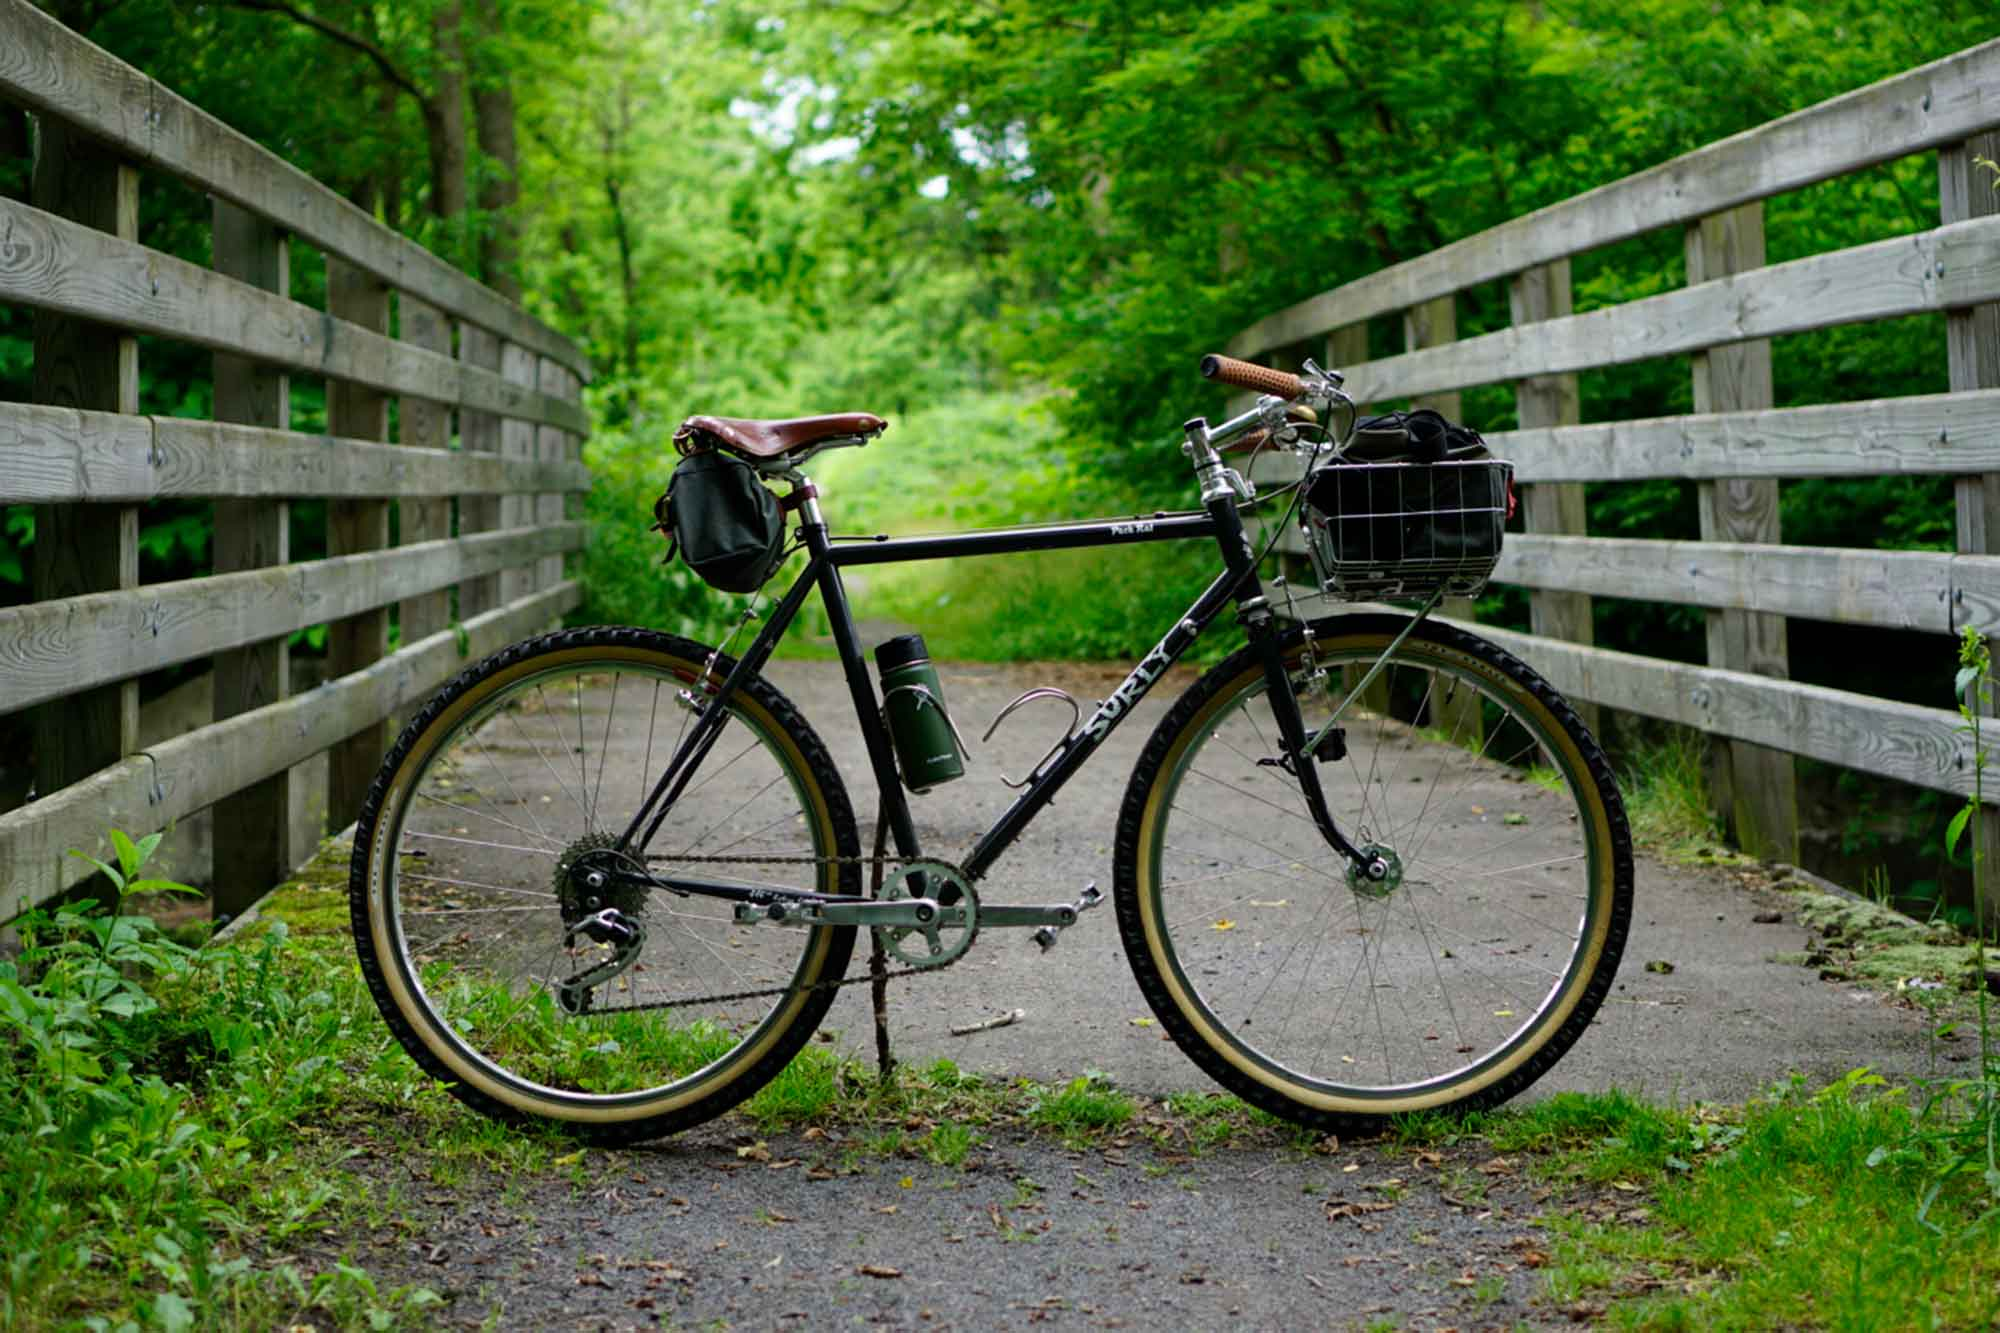 Right side view of Surly Pack Rat bike with front basket on a trail bridge on a paved trail in the woods